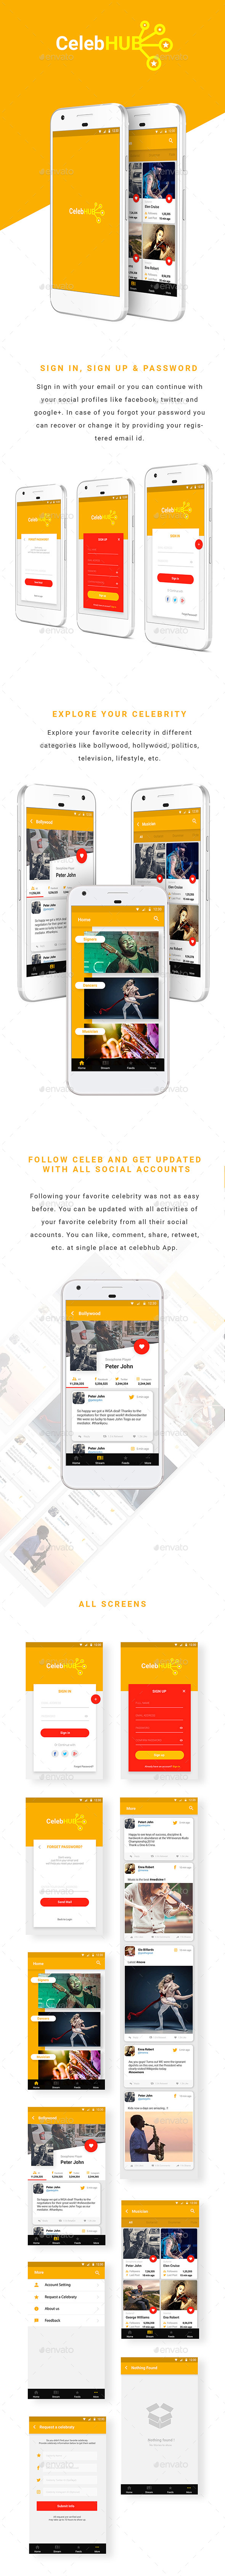 Social Media Celebrity Stream (User Interfaces)